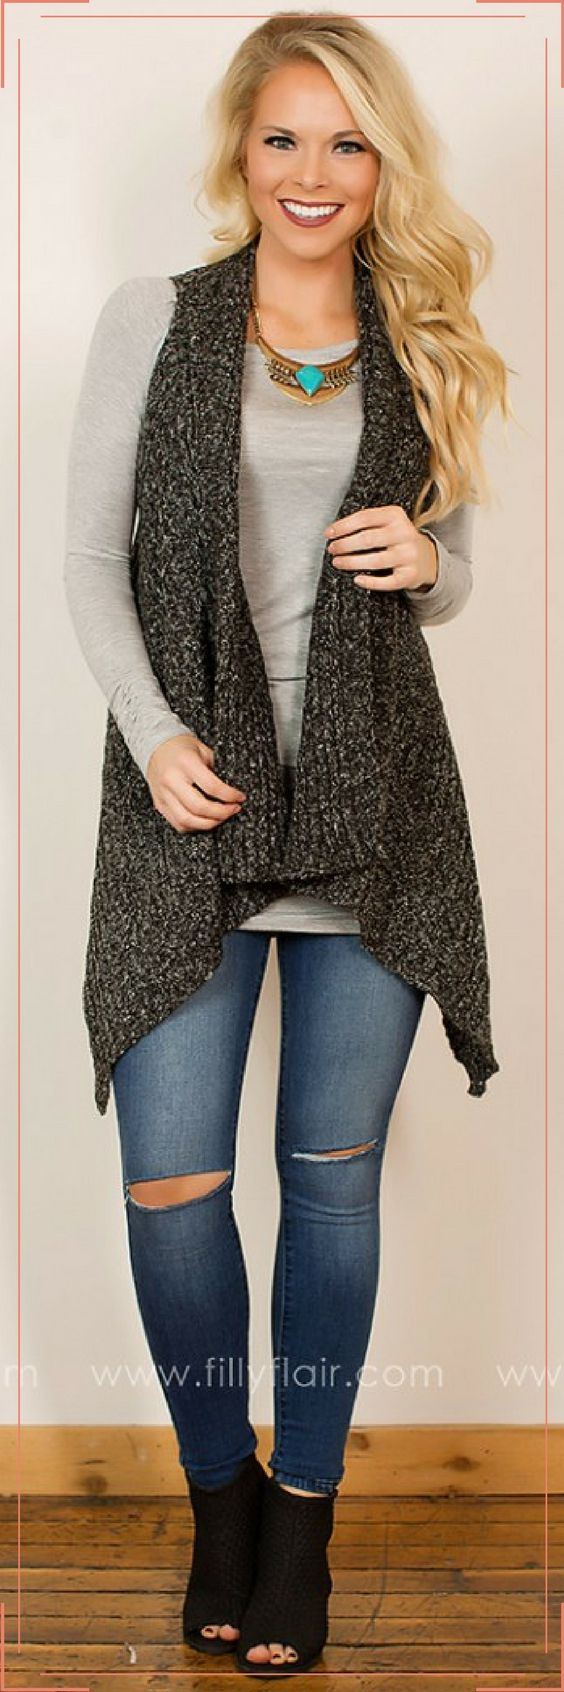 Looking for the perfect versatile cardigan? This heathered gray ...